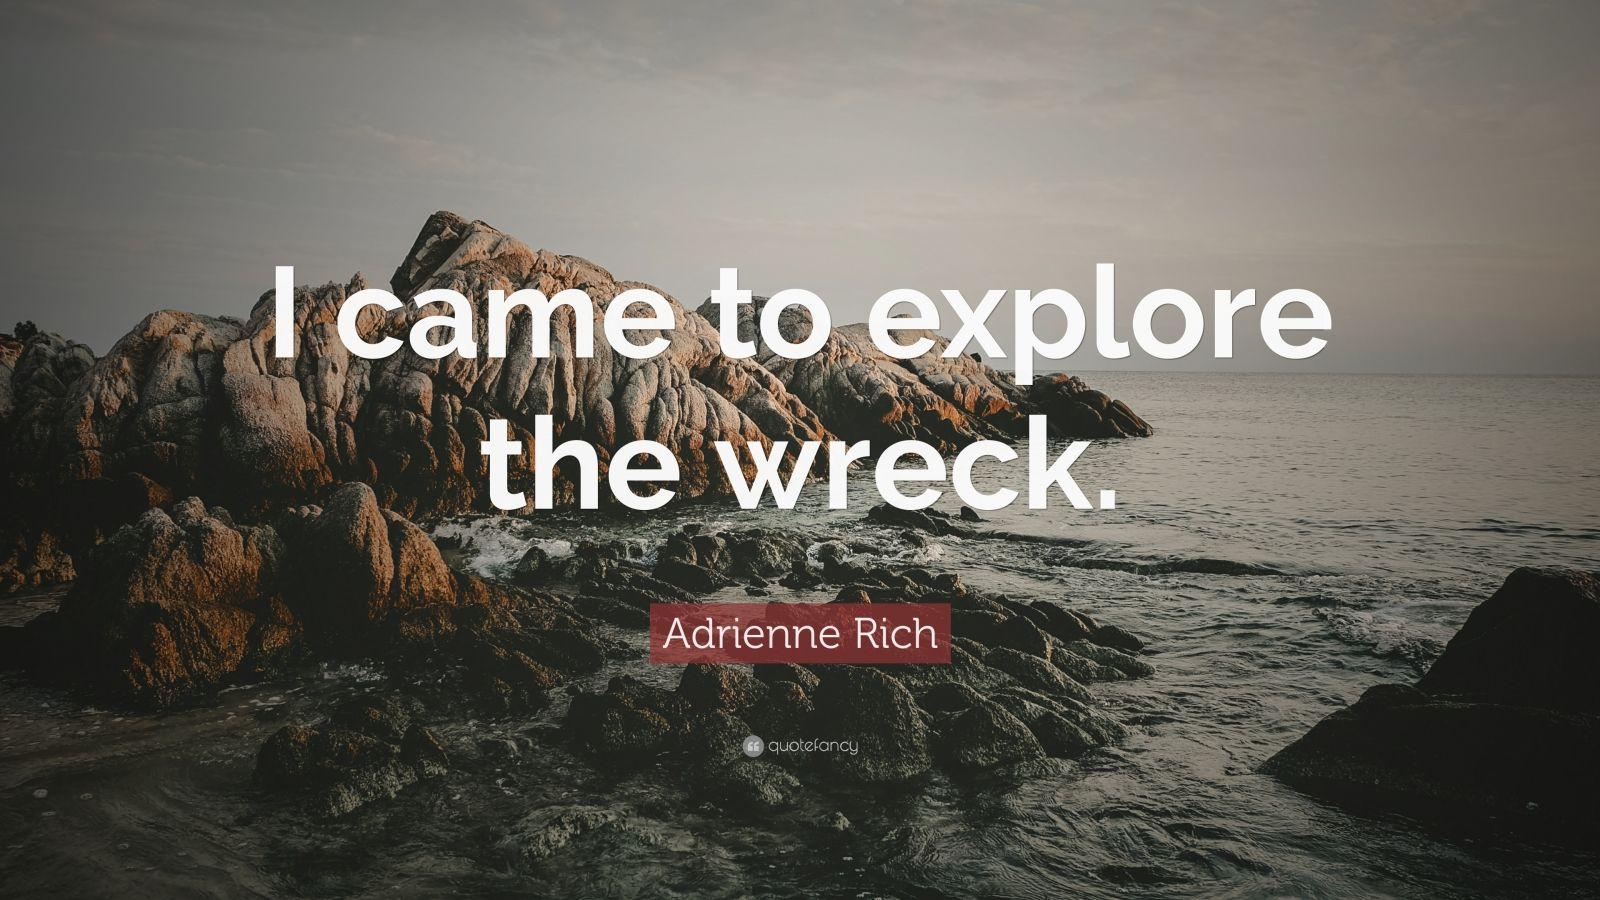 theme diving into wreck adrienne rich short analysis image Analysis of diving into the wreck by adrienne rich adrienne rich, according to the editors of the norton anthology of american literature , is a poet who addresses with particular power the experiences of women, experiences often omitted from history and misrepresented in literature (1444.